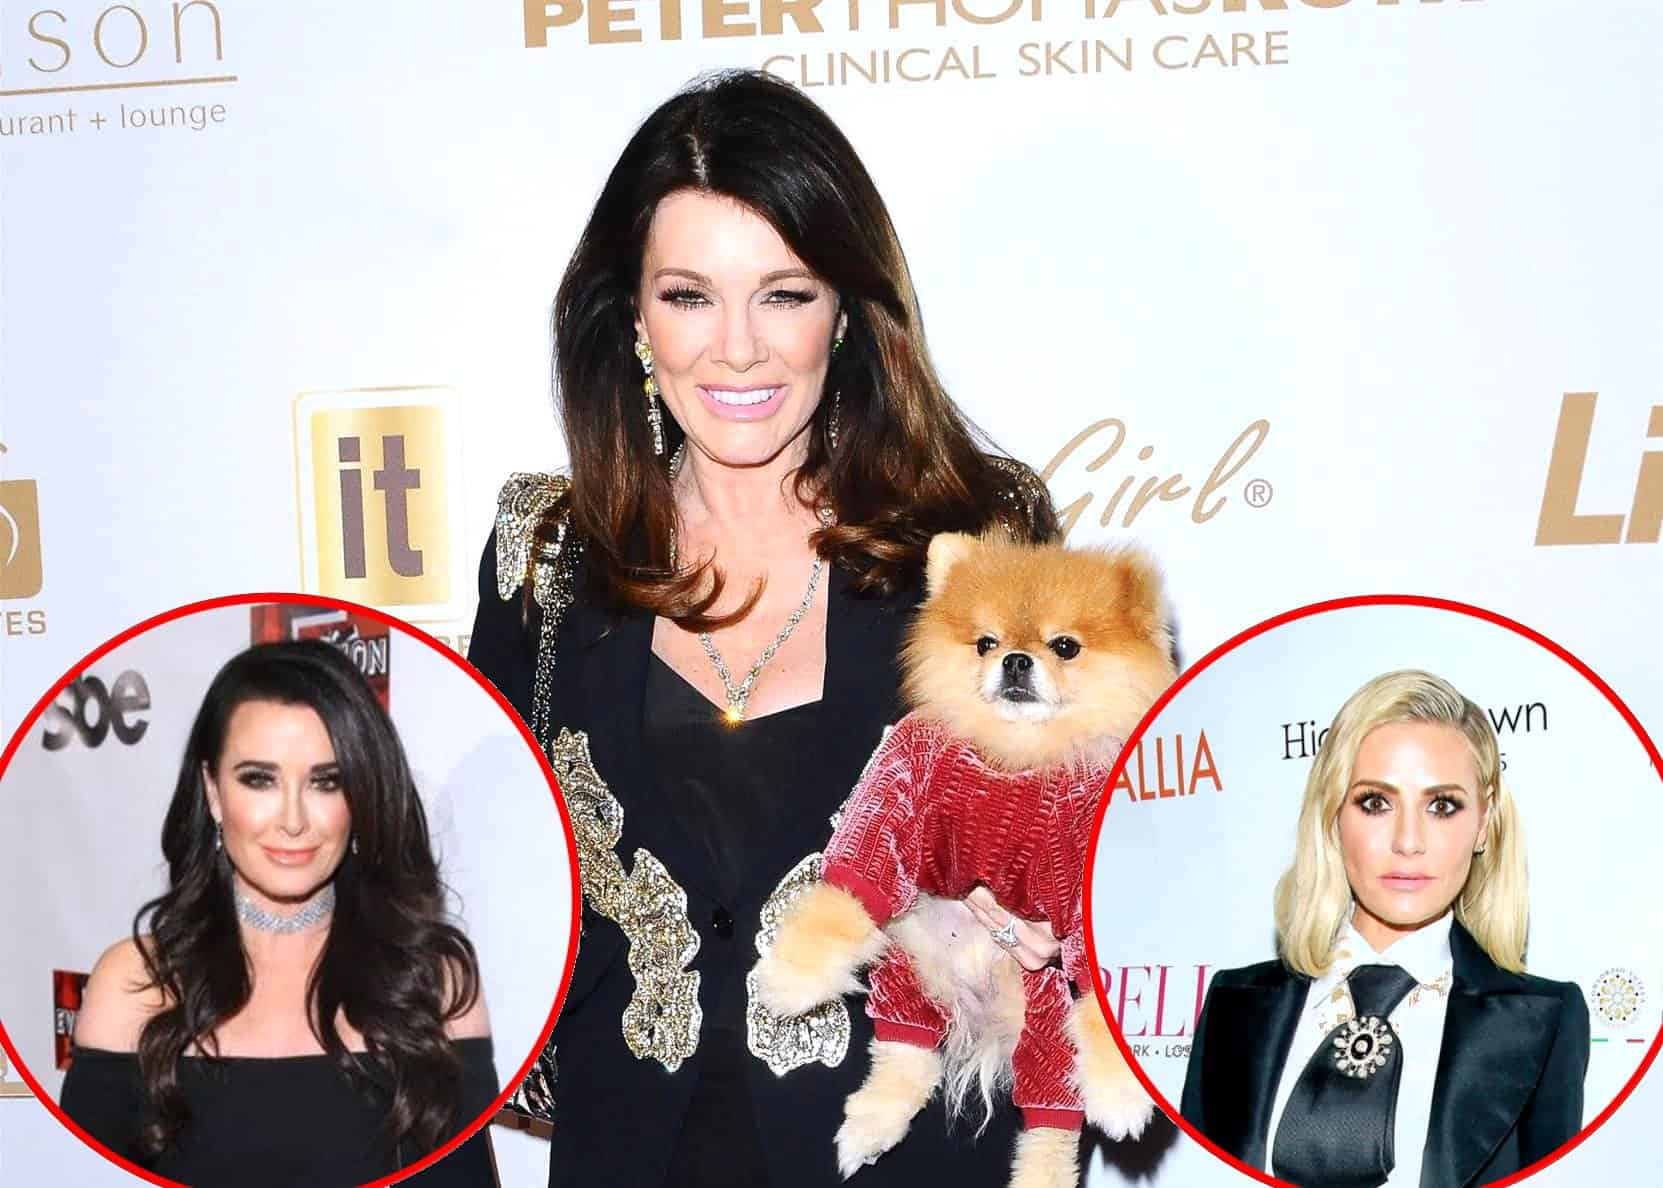 RHOBH's Lisa Vanderpump Reveals Friendship with Kyle Ended Over Lying Claim, 'Careless' Dorit Put Her Charity at Risk